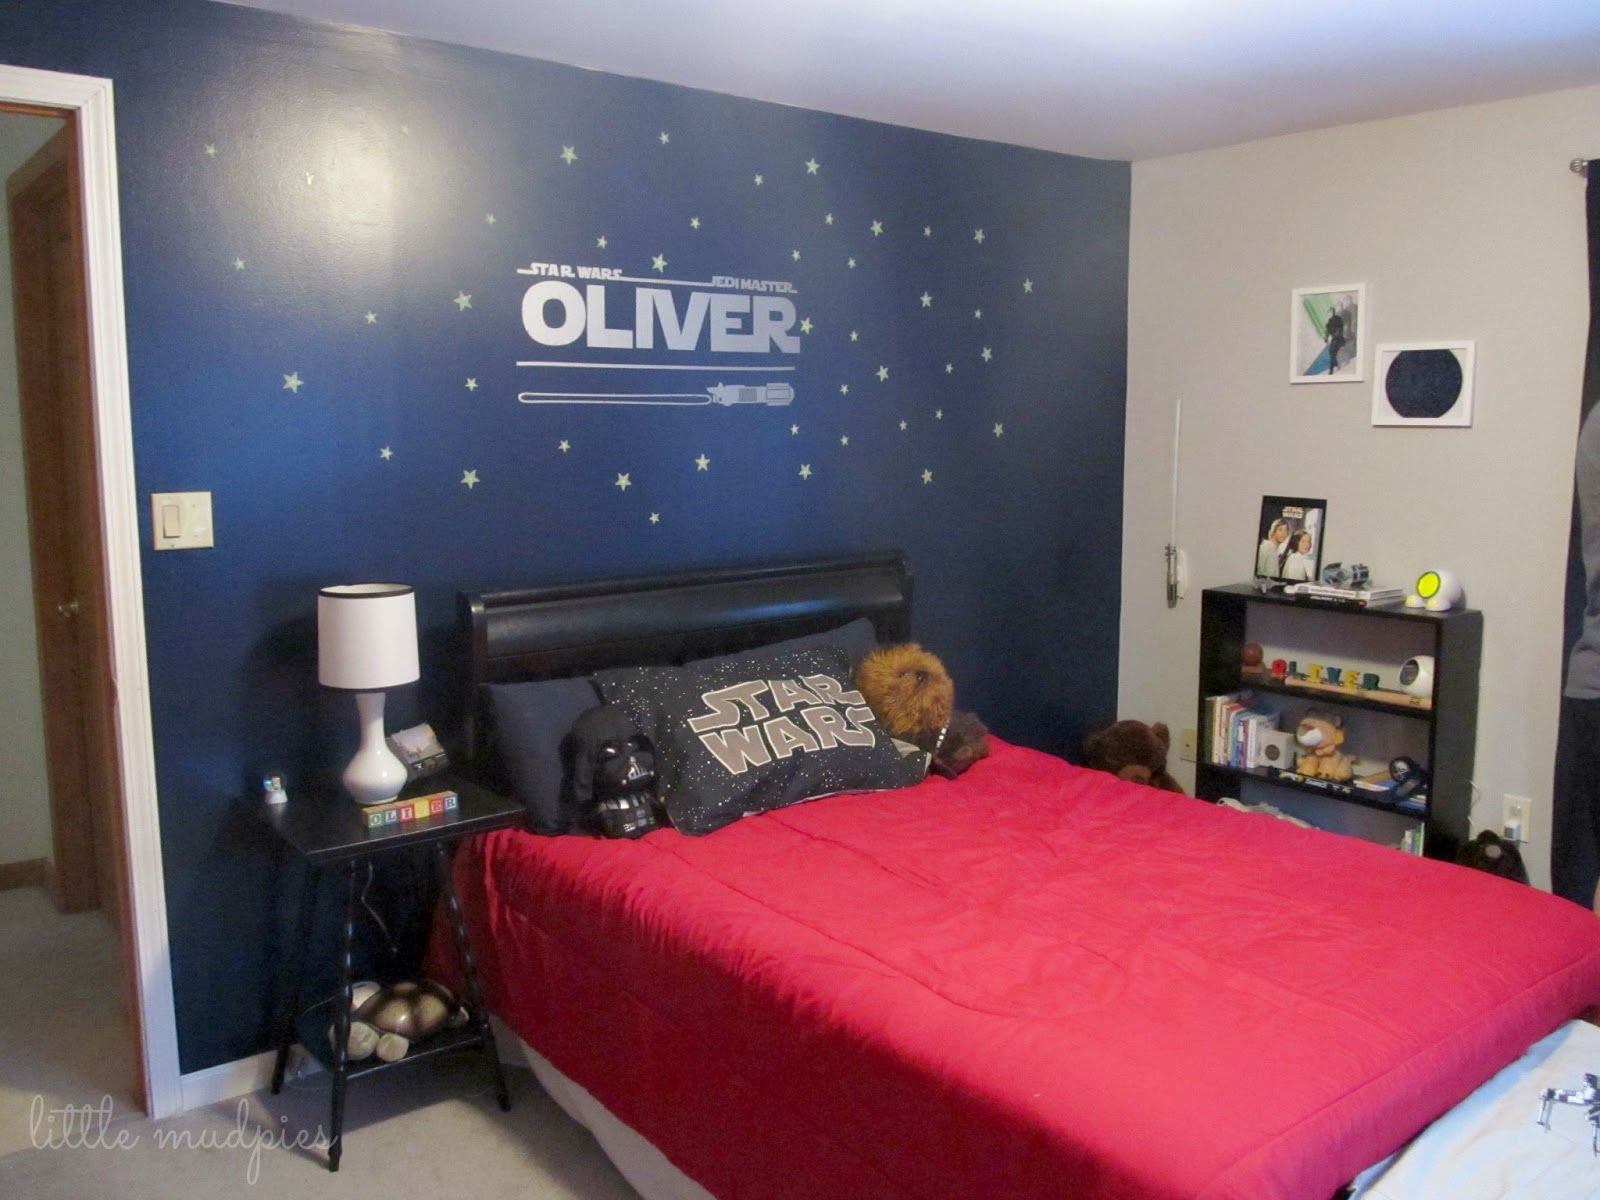 Star Wars Themed Bedroom Ideas Star Wars Themed Bedroom Via Little Mudpies One Dark Wall